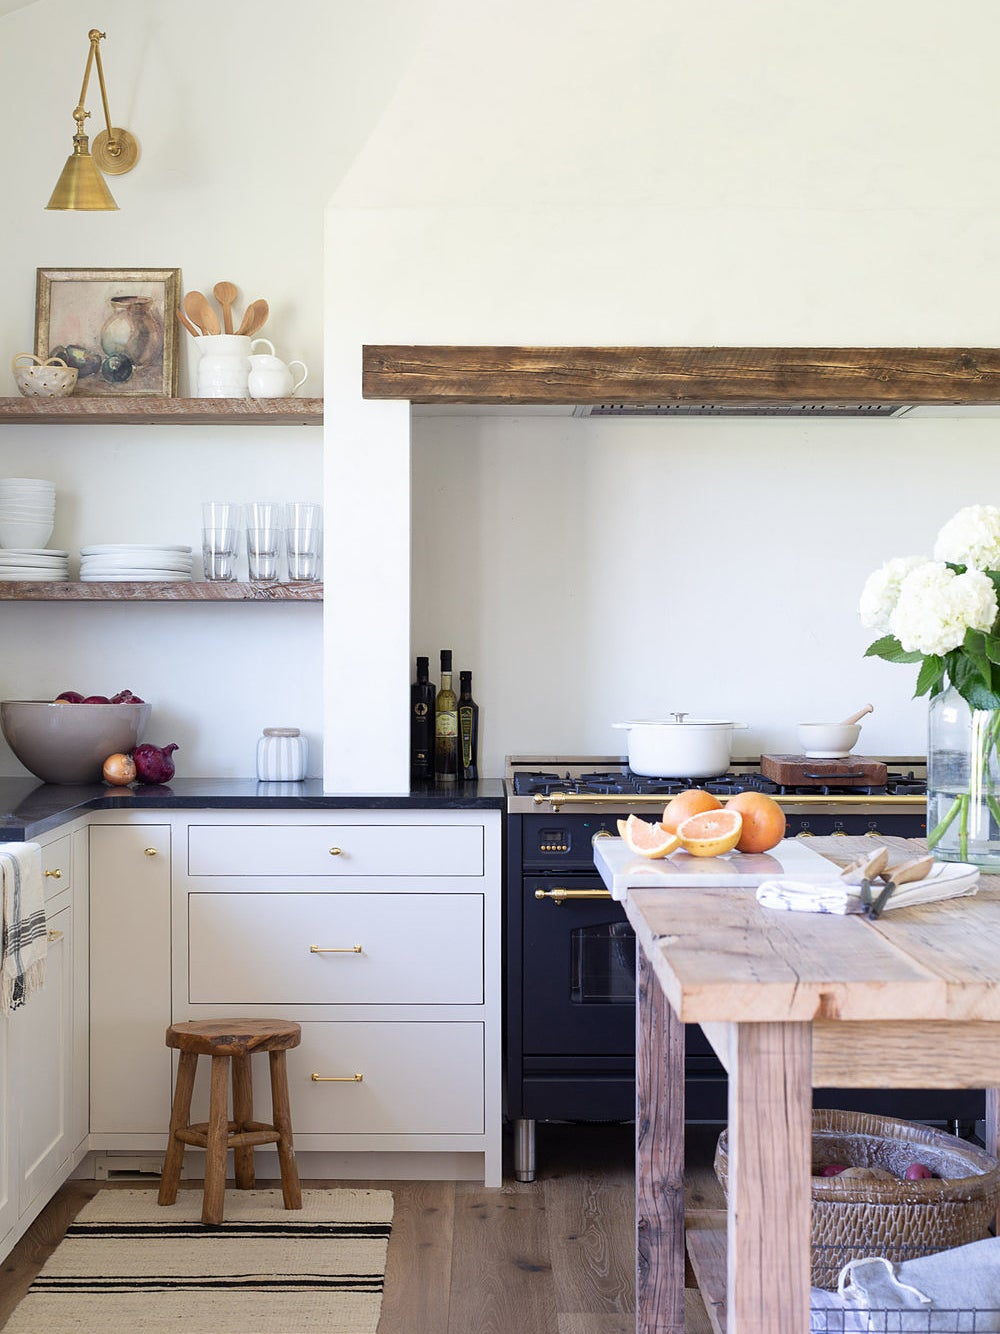 The Kitchen Counter-Cabinet Combo That Will Take 2020 by Storm